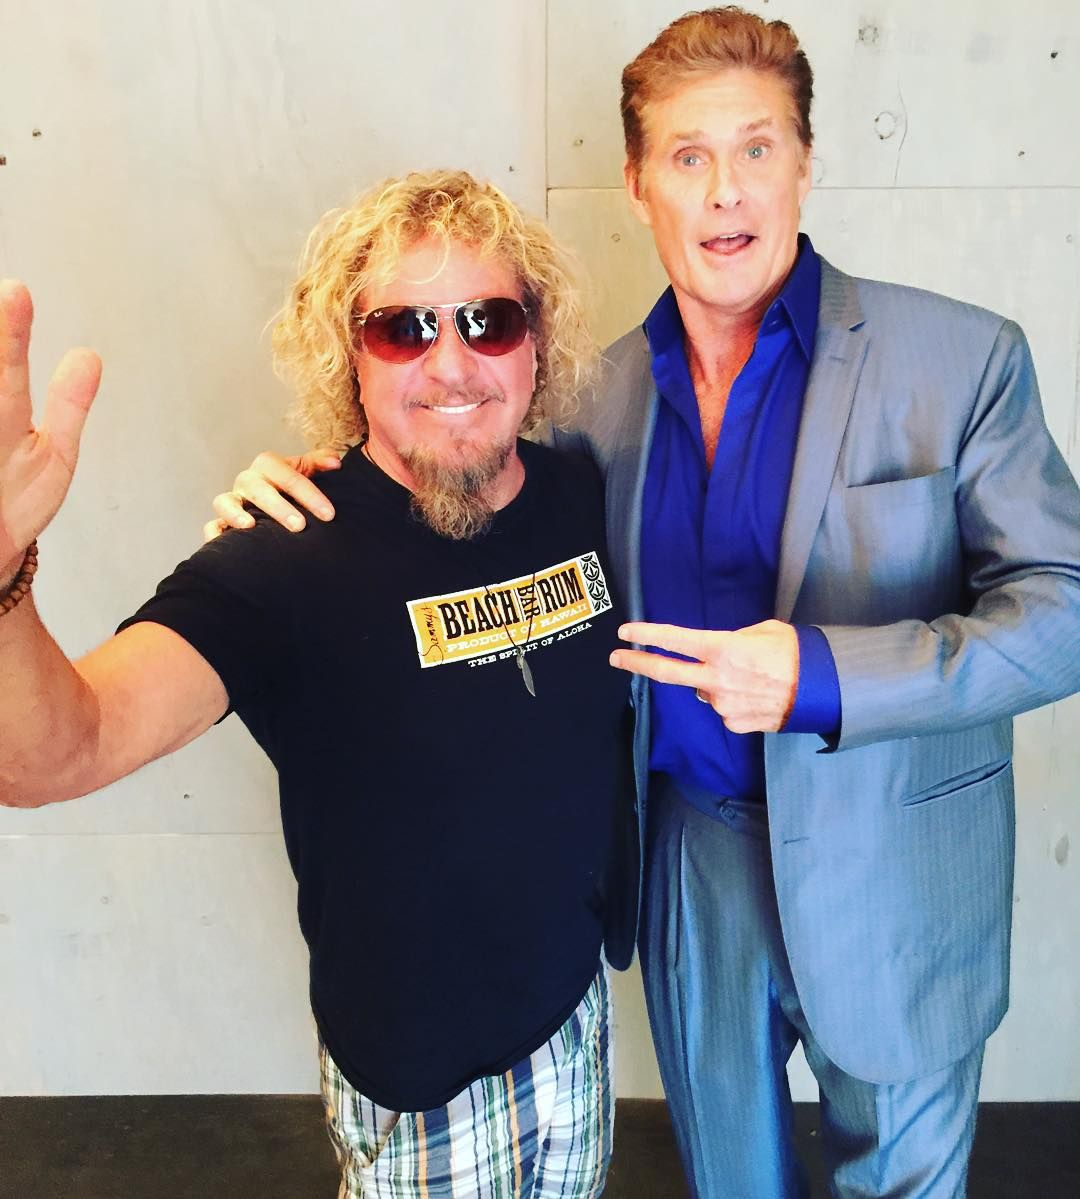 Don T Hassle The Hoff Ran Into My Old Buddy At The Axstv Promos On The Way Home From Cabo Which Is Where I Saw Him Last In A Speedo Nice Shorts